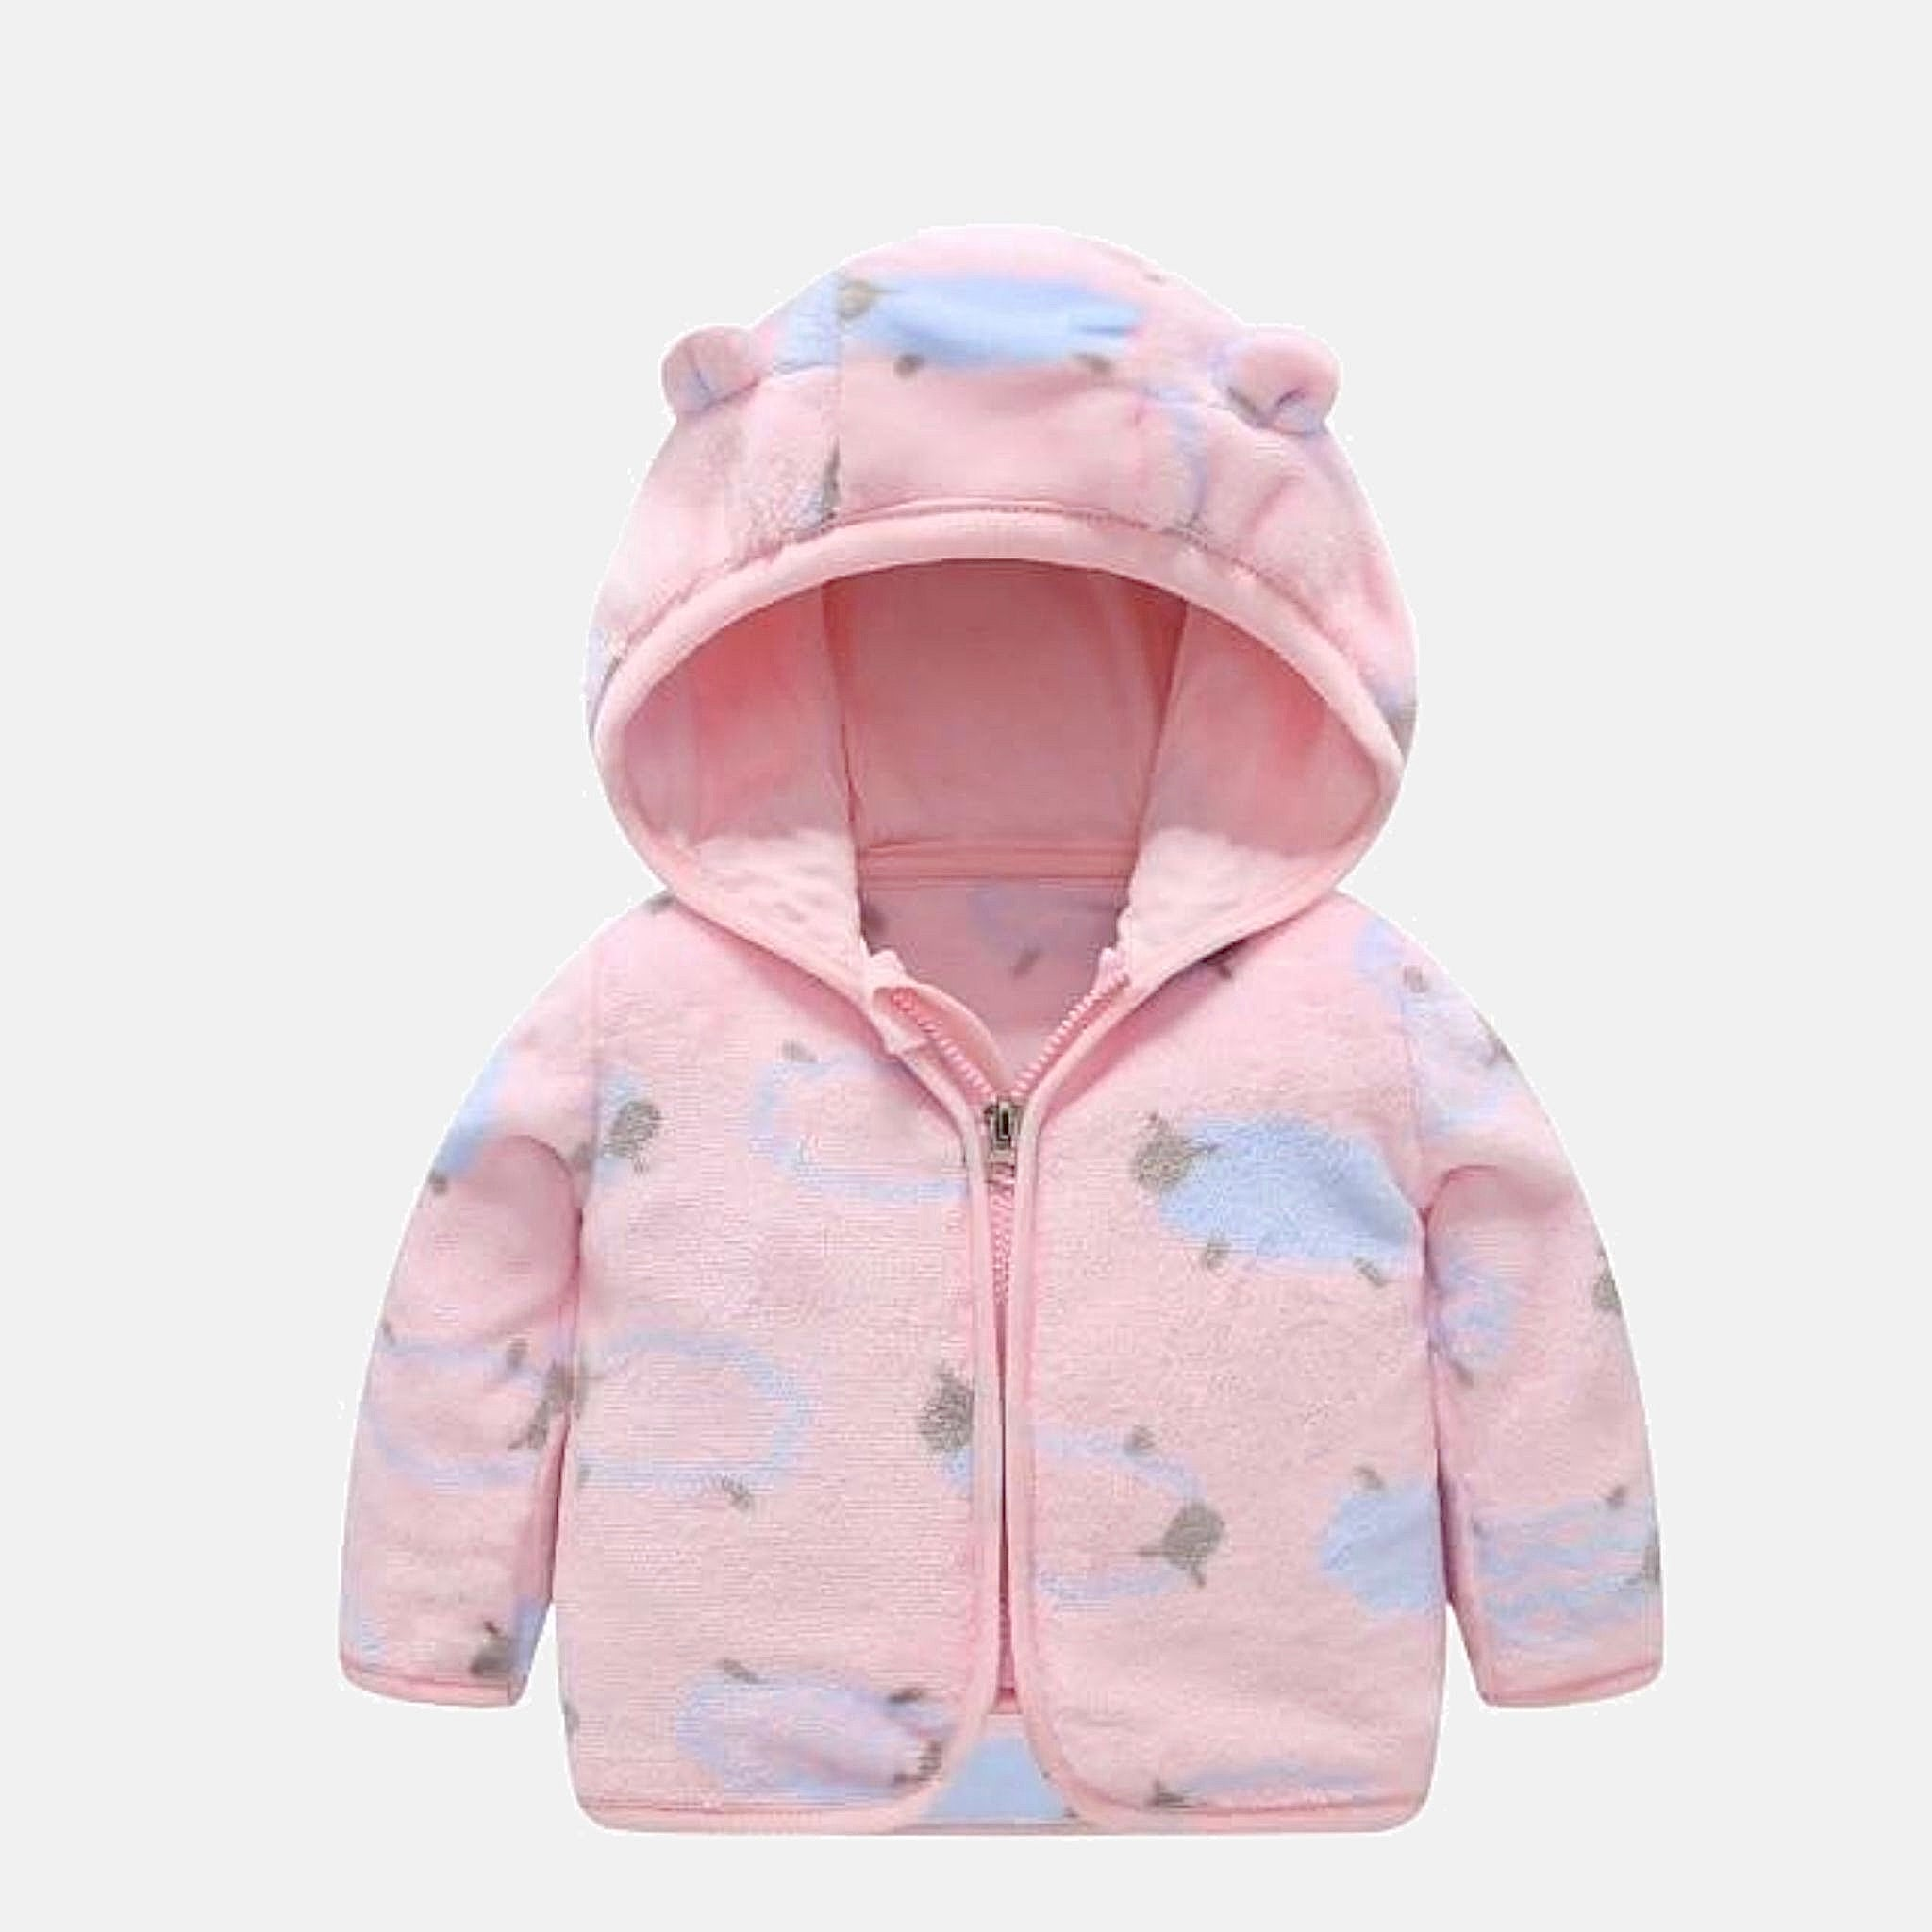 Baby Flannel Hooded Jacket   Thick warm pink sheep jackets newborn clothing